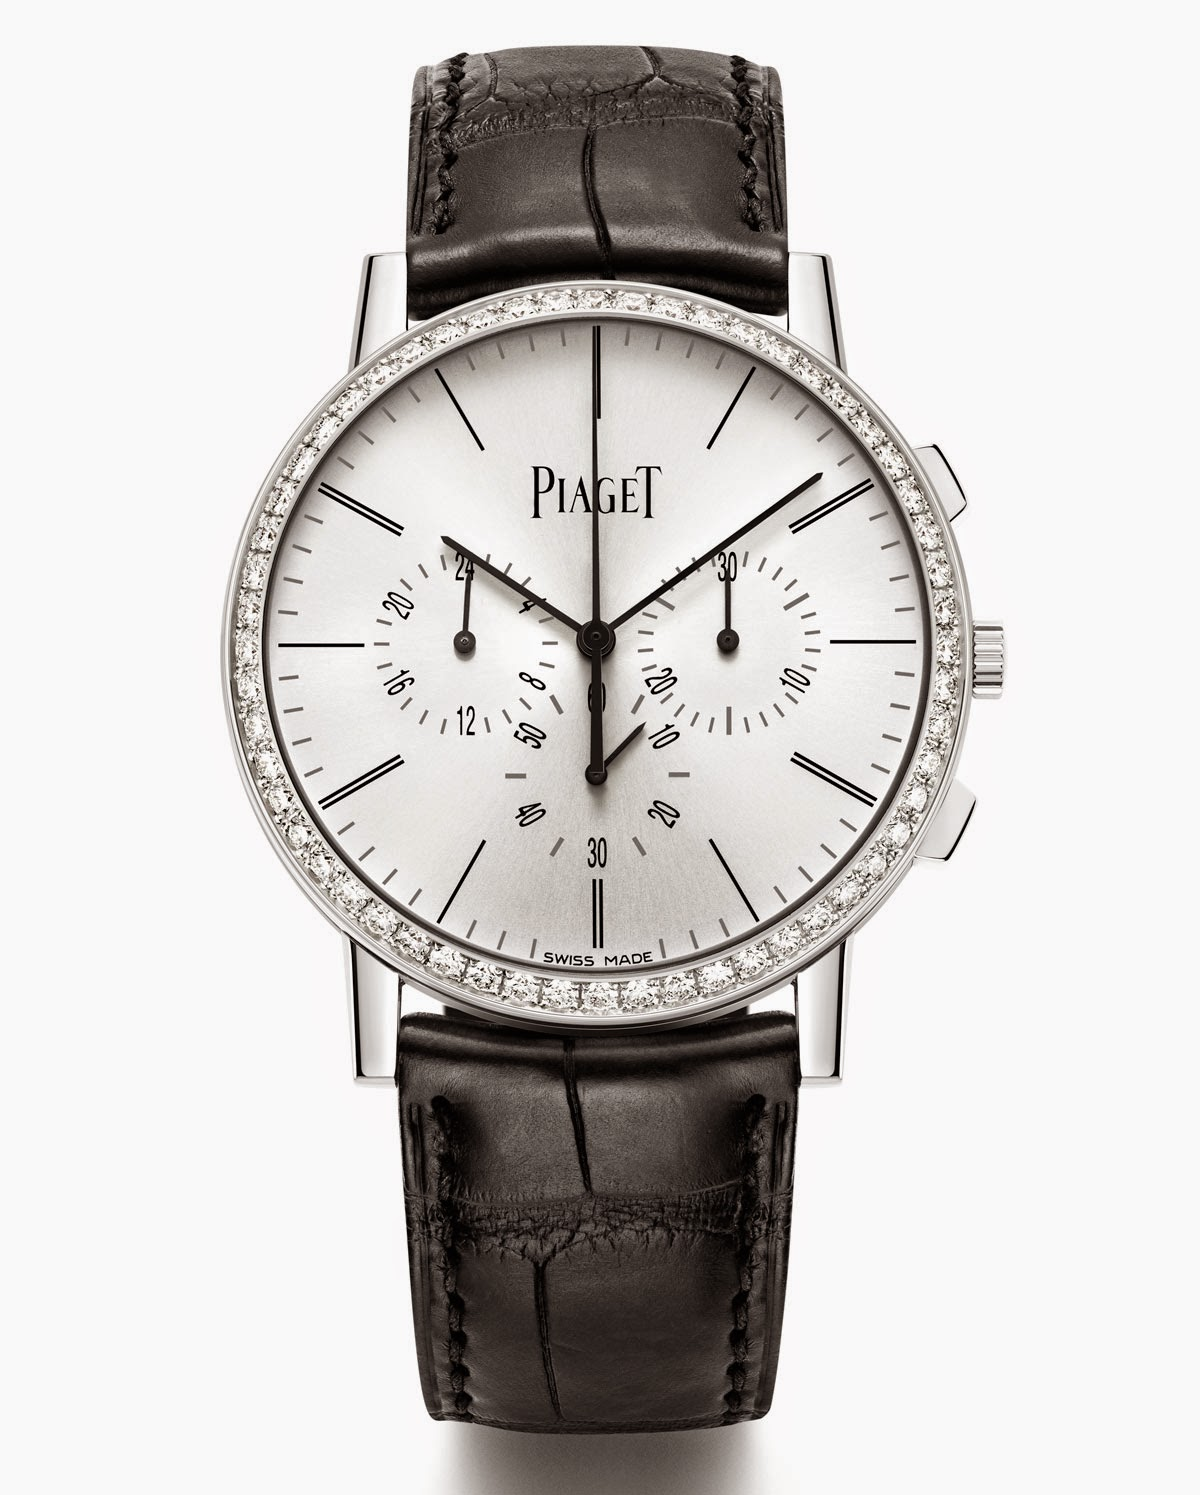 Piaget-Altiplano-Chronograph-wgfront